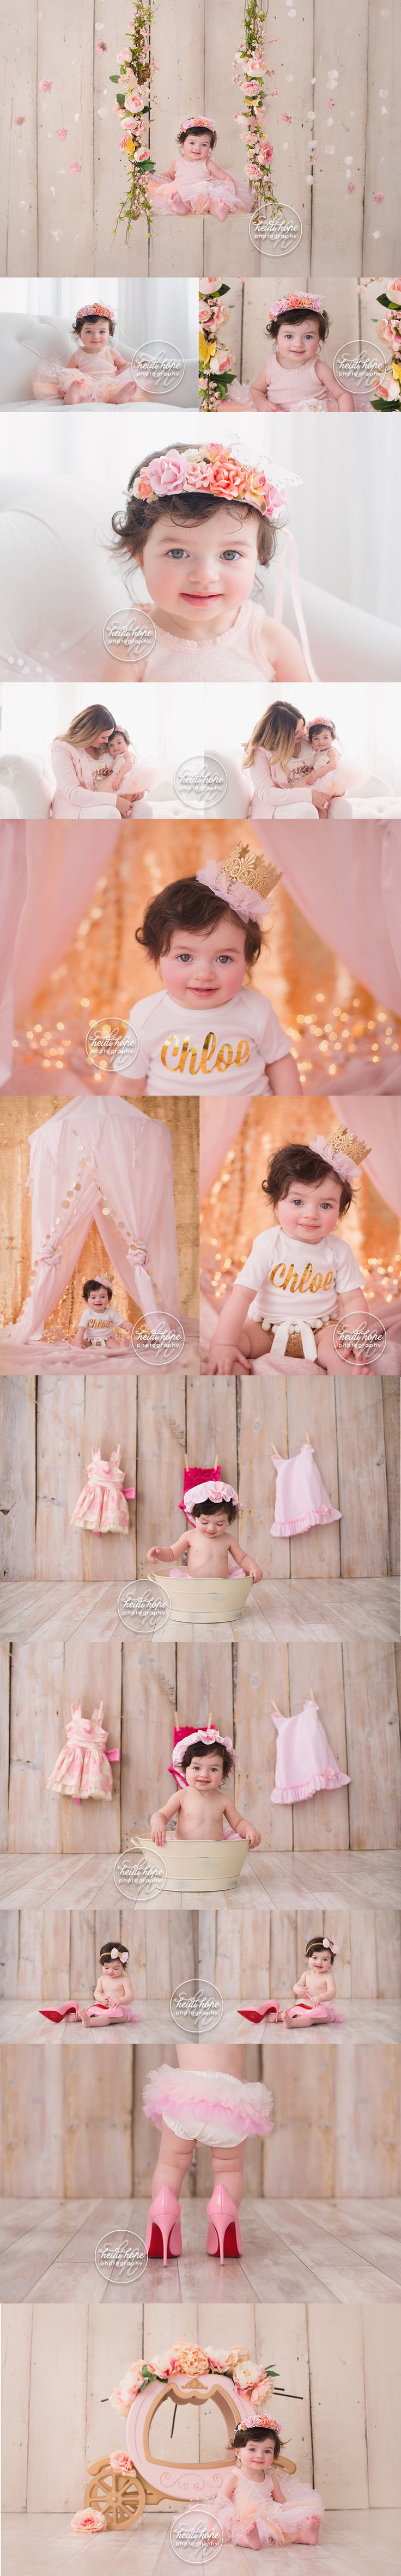 Girly baby portrait inspiration by Boston baby photography Heidi Hope